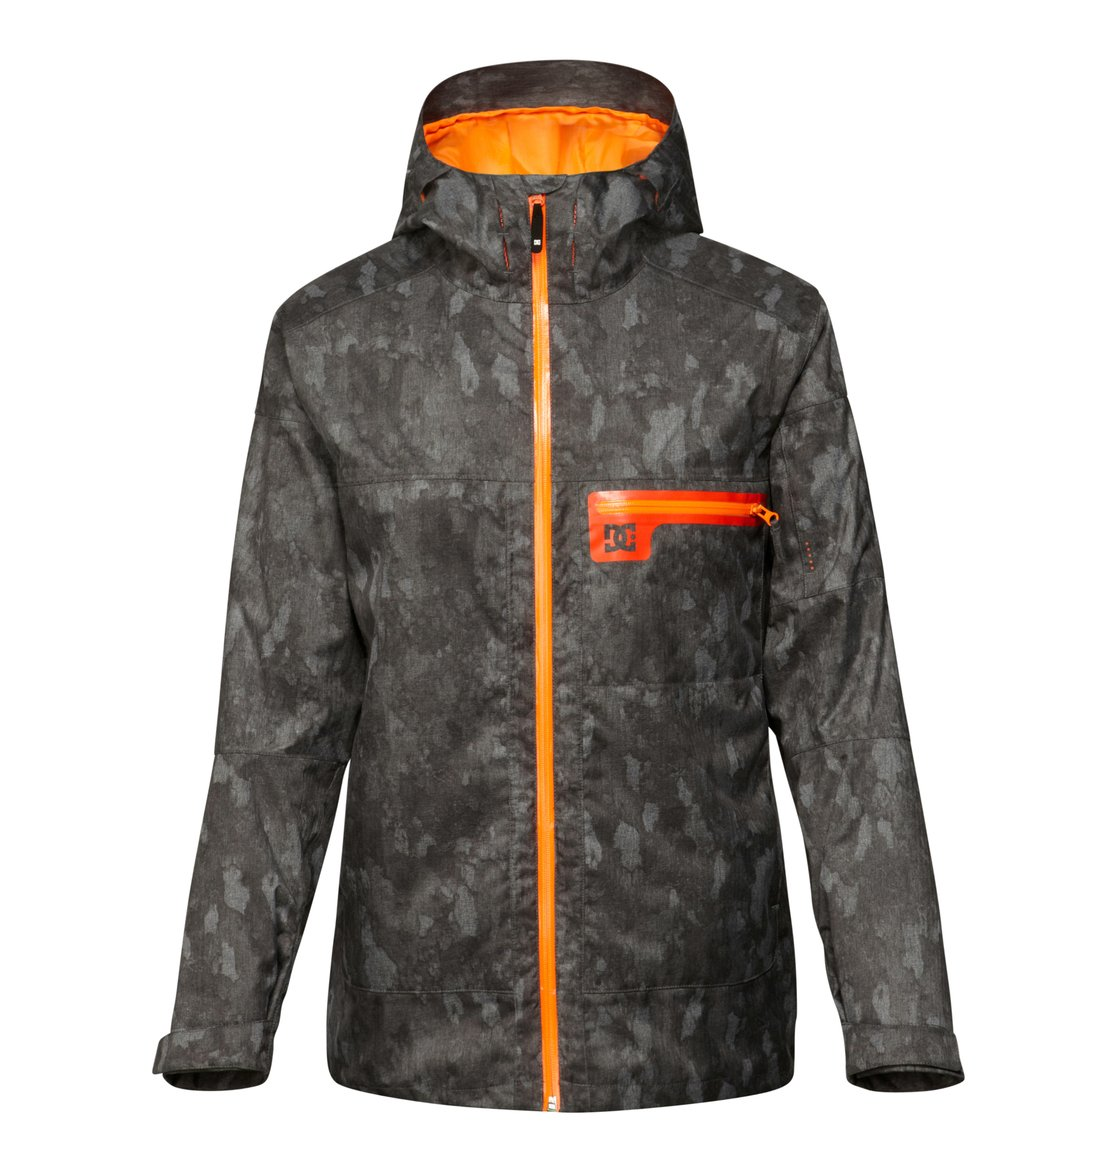 Clothing stores online :: Axis clothing store